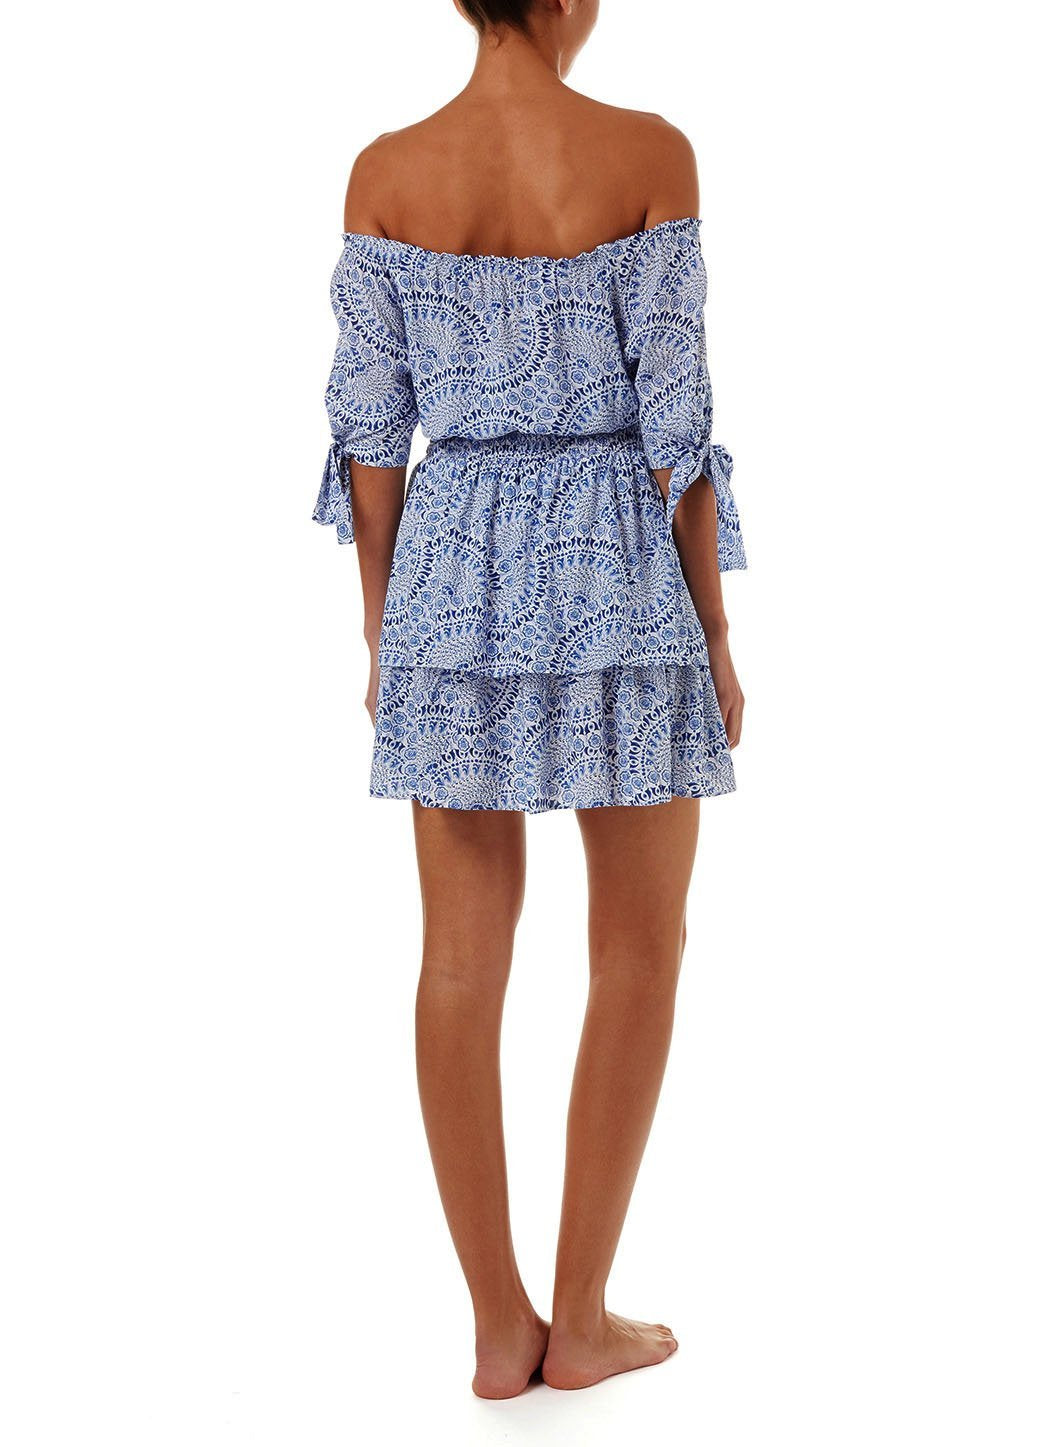 camilla blue fan offtheshoulder short dress 2019 B